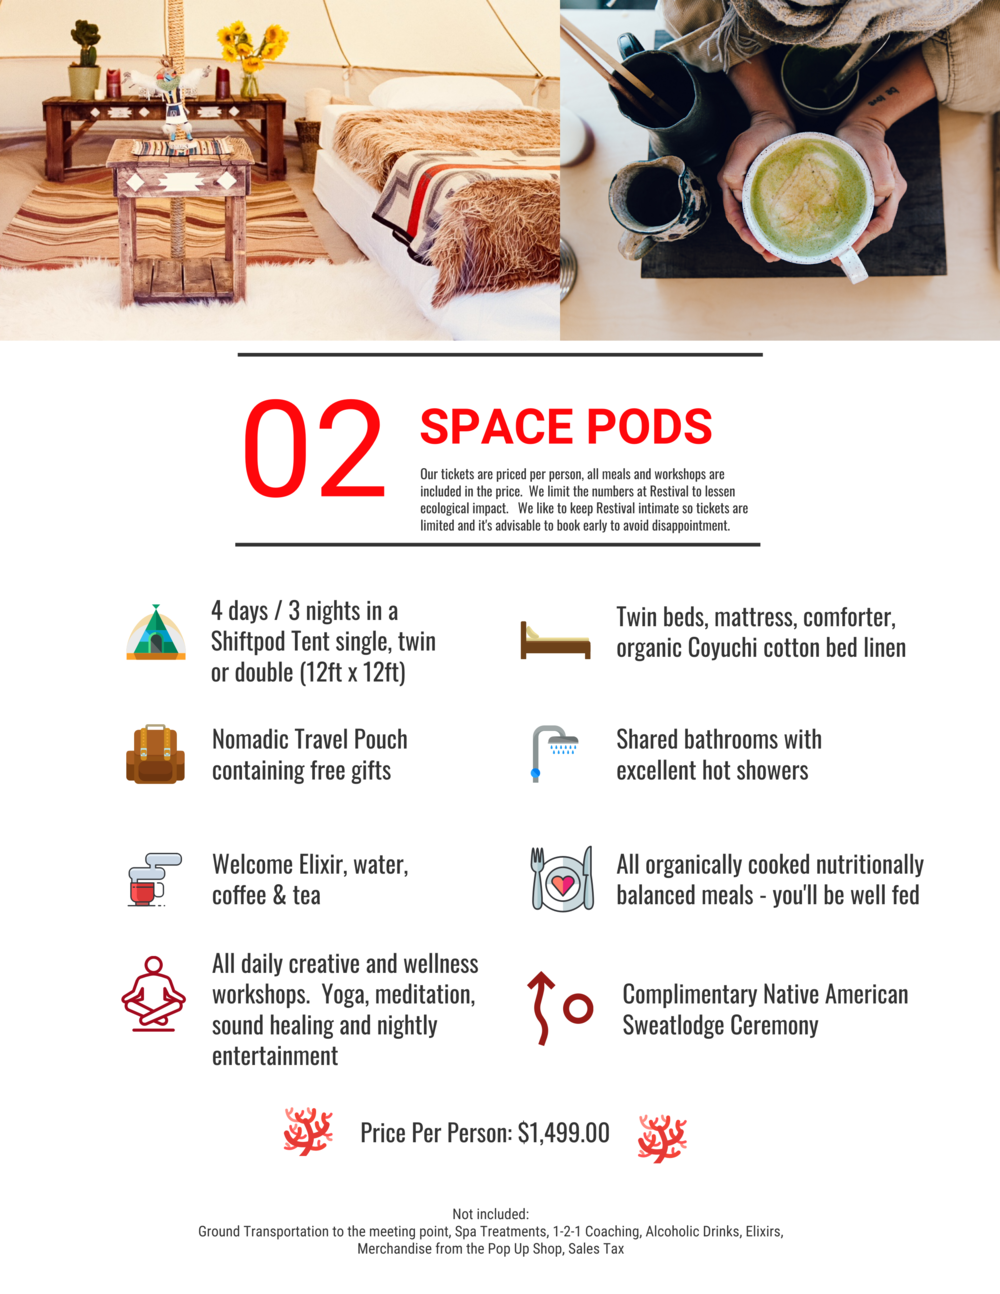 Option 2 - Space Pods For those who wish to have a little more privacy. A pod of your own or with your friend / partner may be what you need to reconnect. You'll share showers, bathrooms, etc but with just a bit more